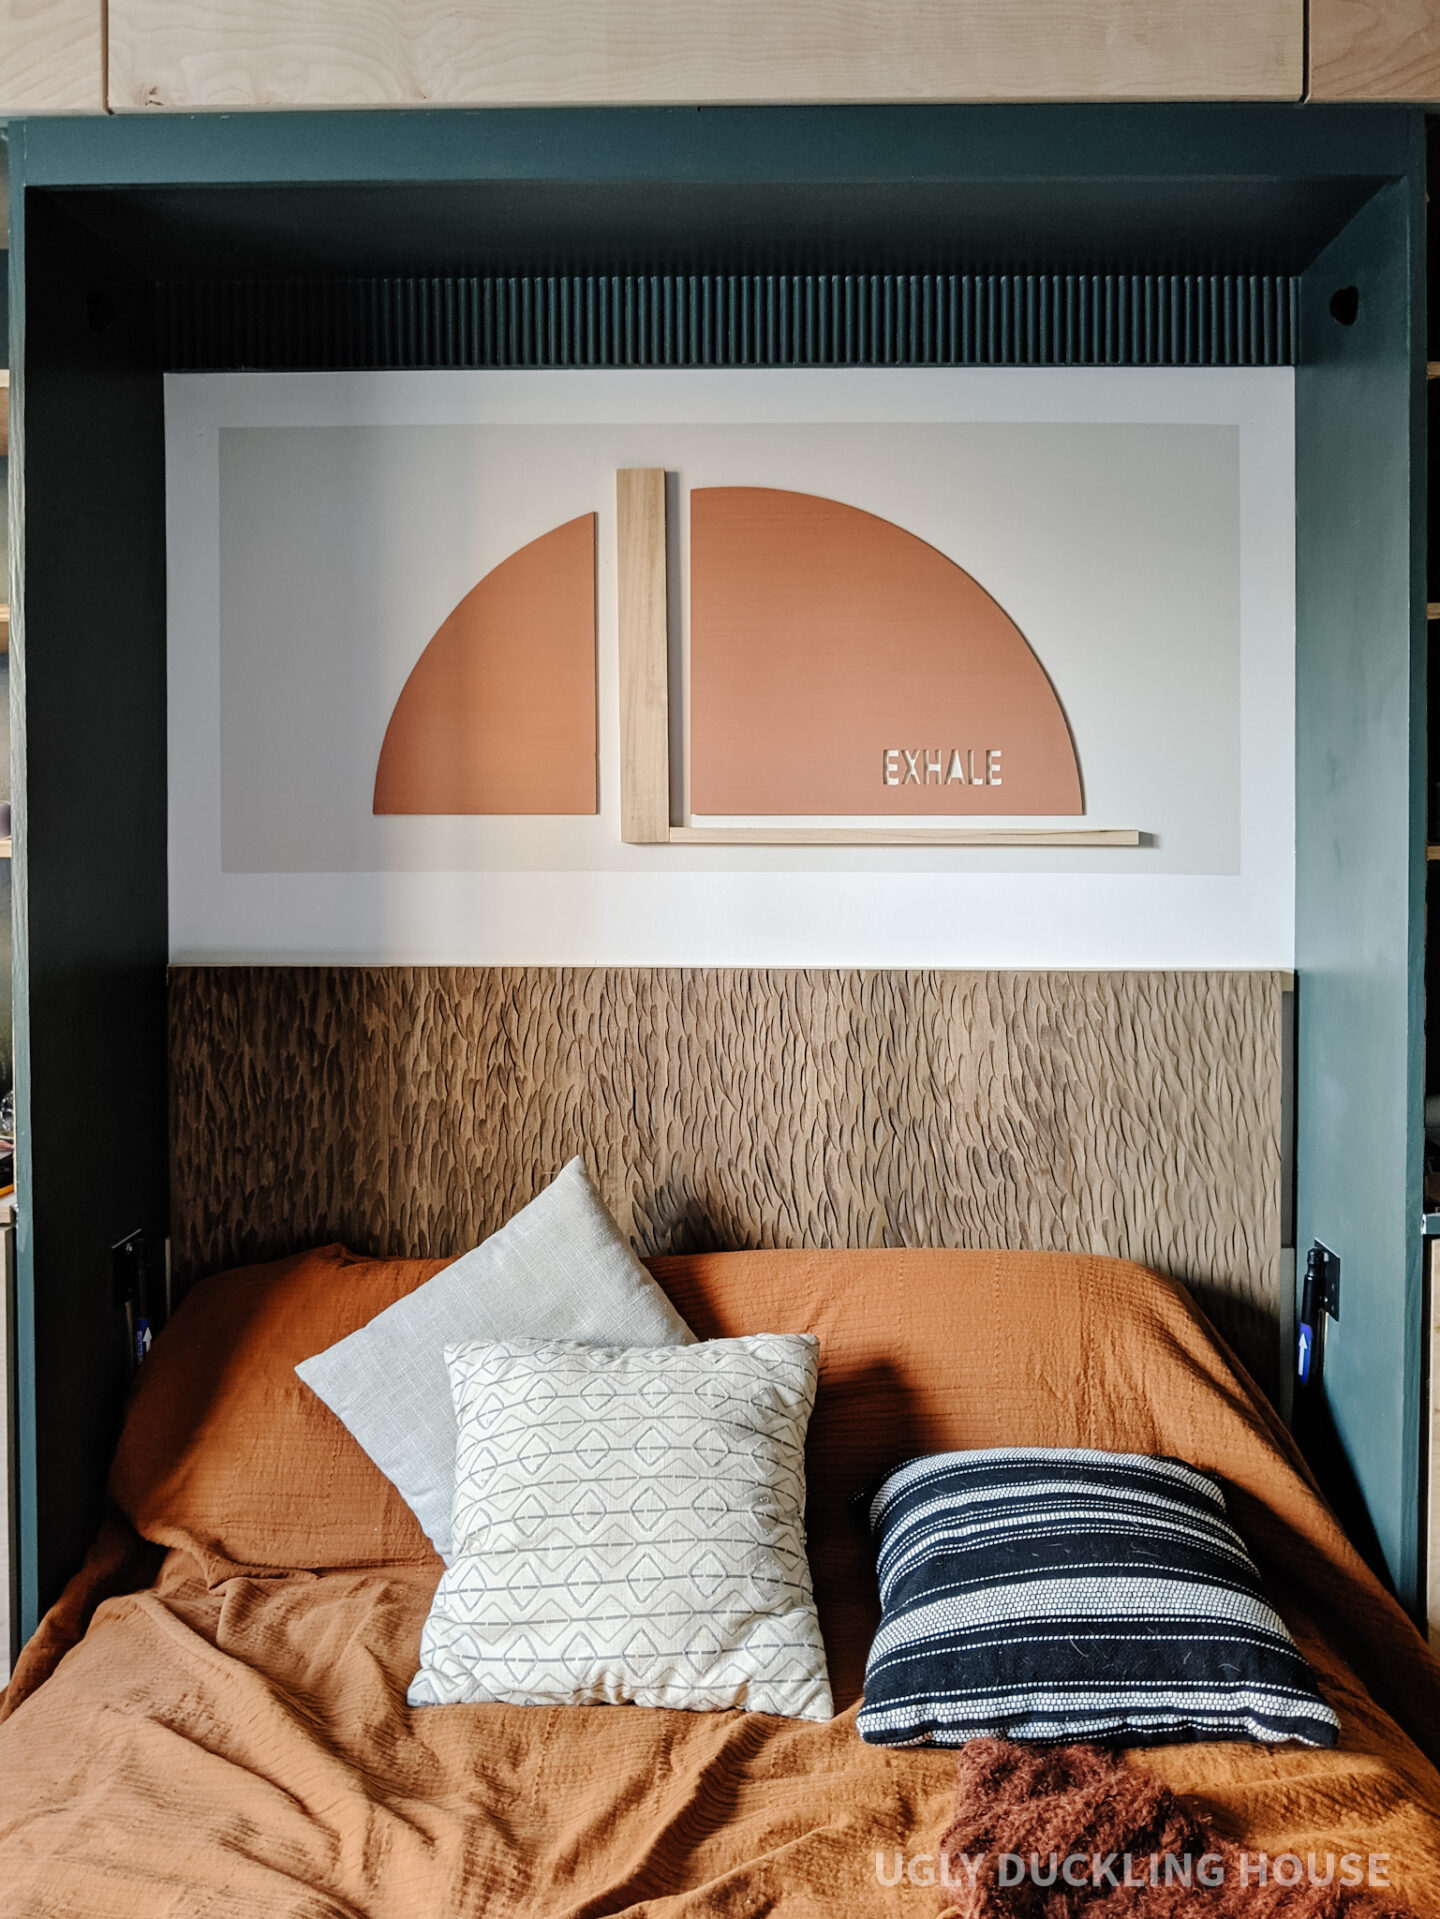 murphy bed nook reveal - exhale rust arch color block art and carved wood headboard with neutral bedding and rust coverlet